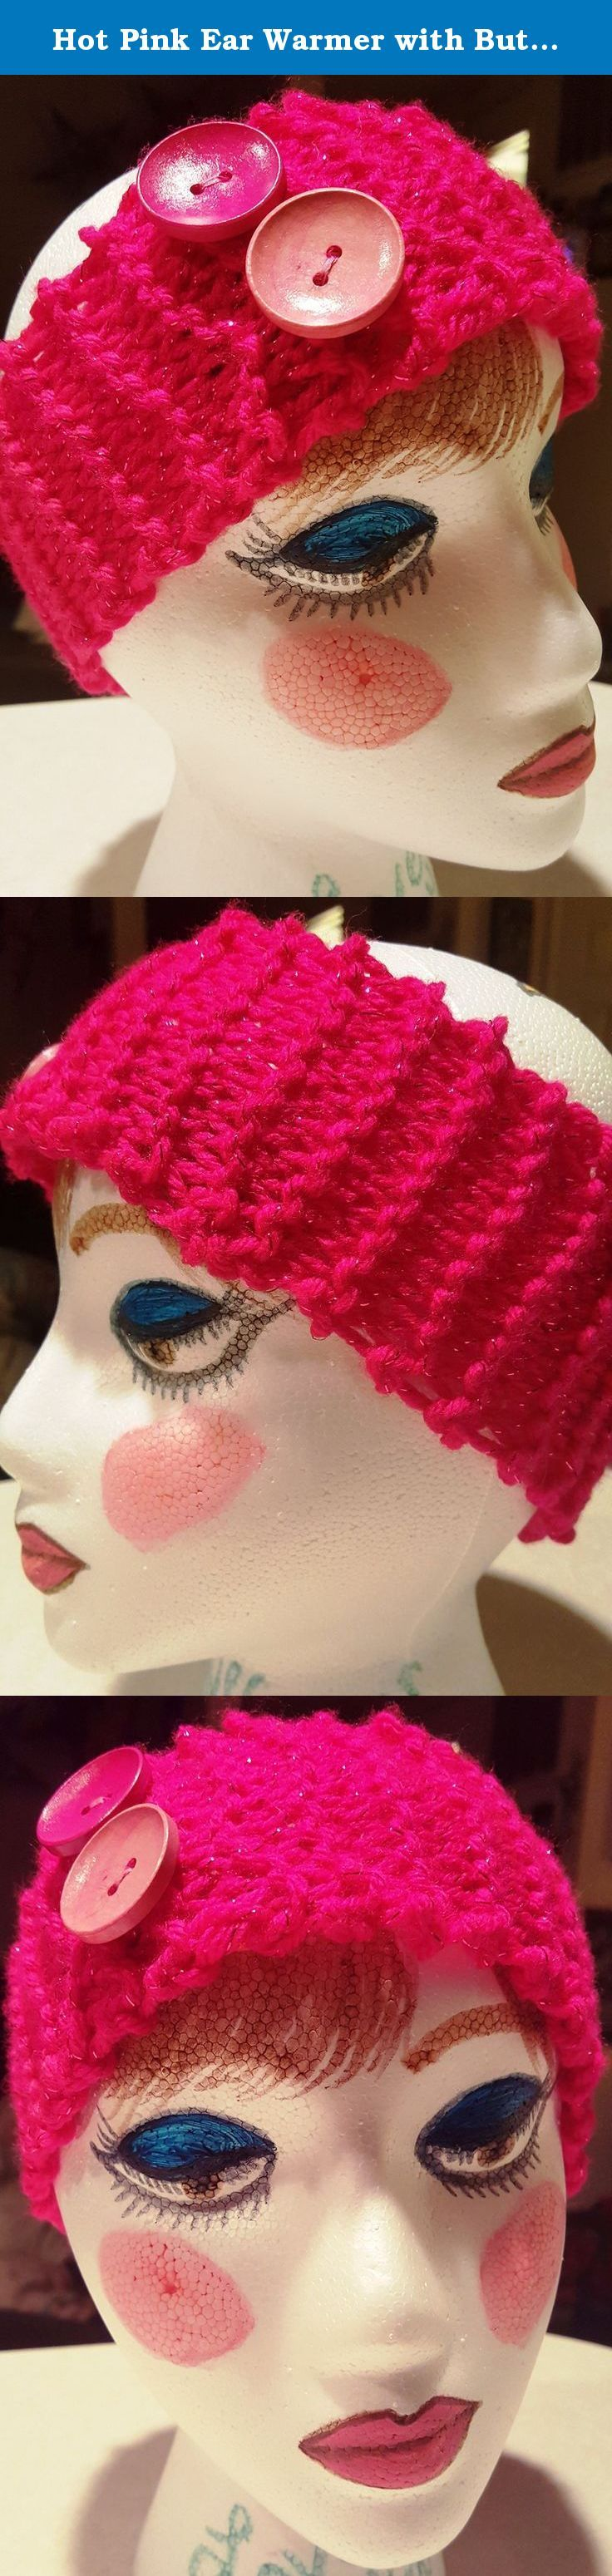 Hot Pink Ear Warmer with Buttons. Adorable, hot pink ear warmer with two pink buttons (sewn on) and metallic strands throughout. Standard, adult -sized. Acrylic yarn, lightweight and has stretch to it.